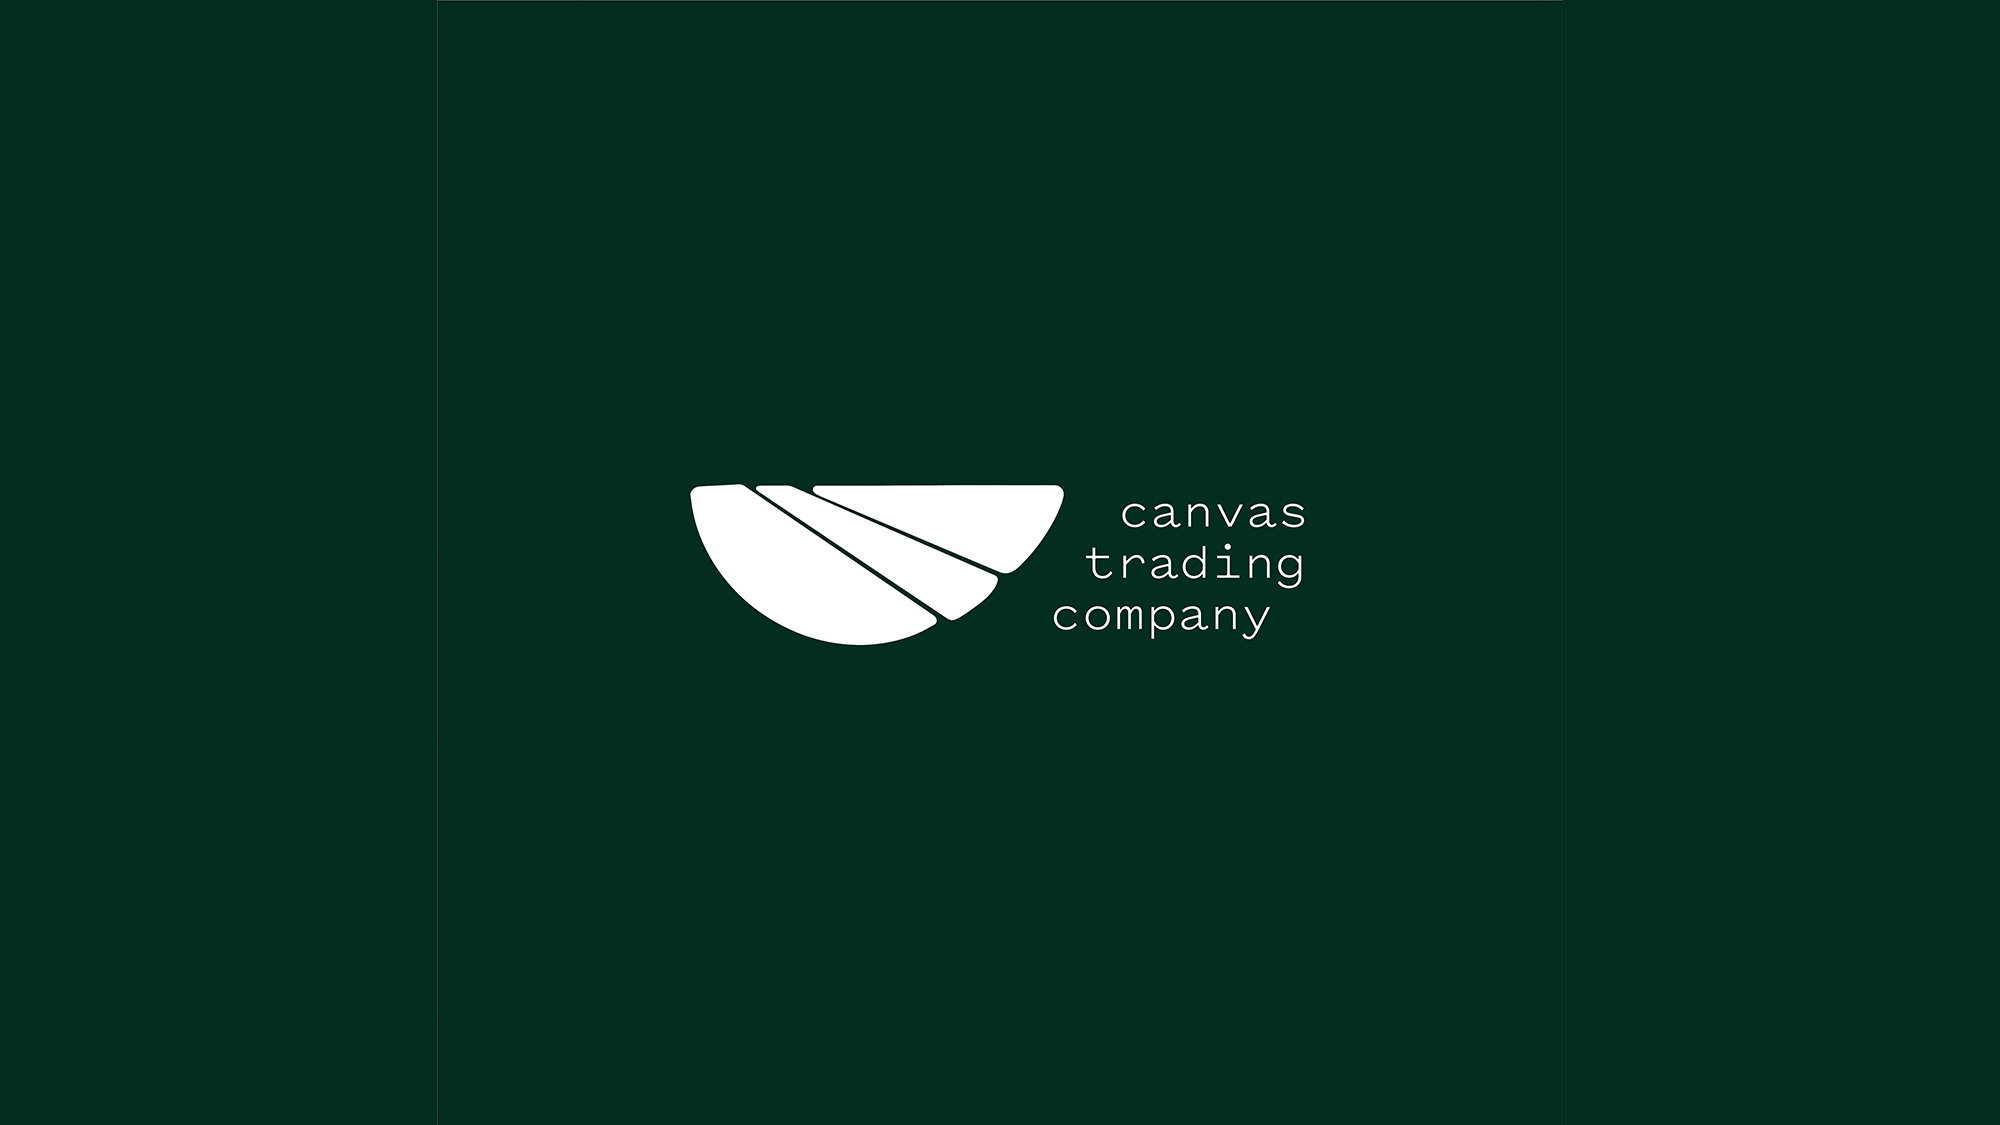 Cover image: canvas trading co.